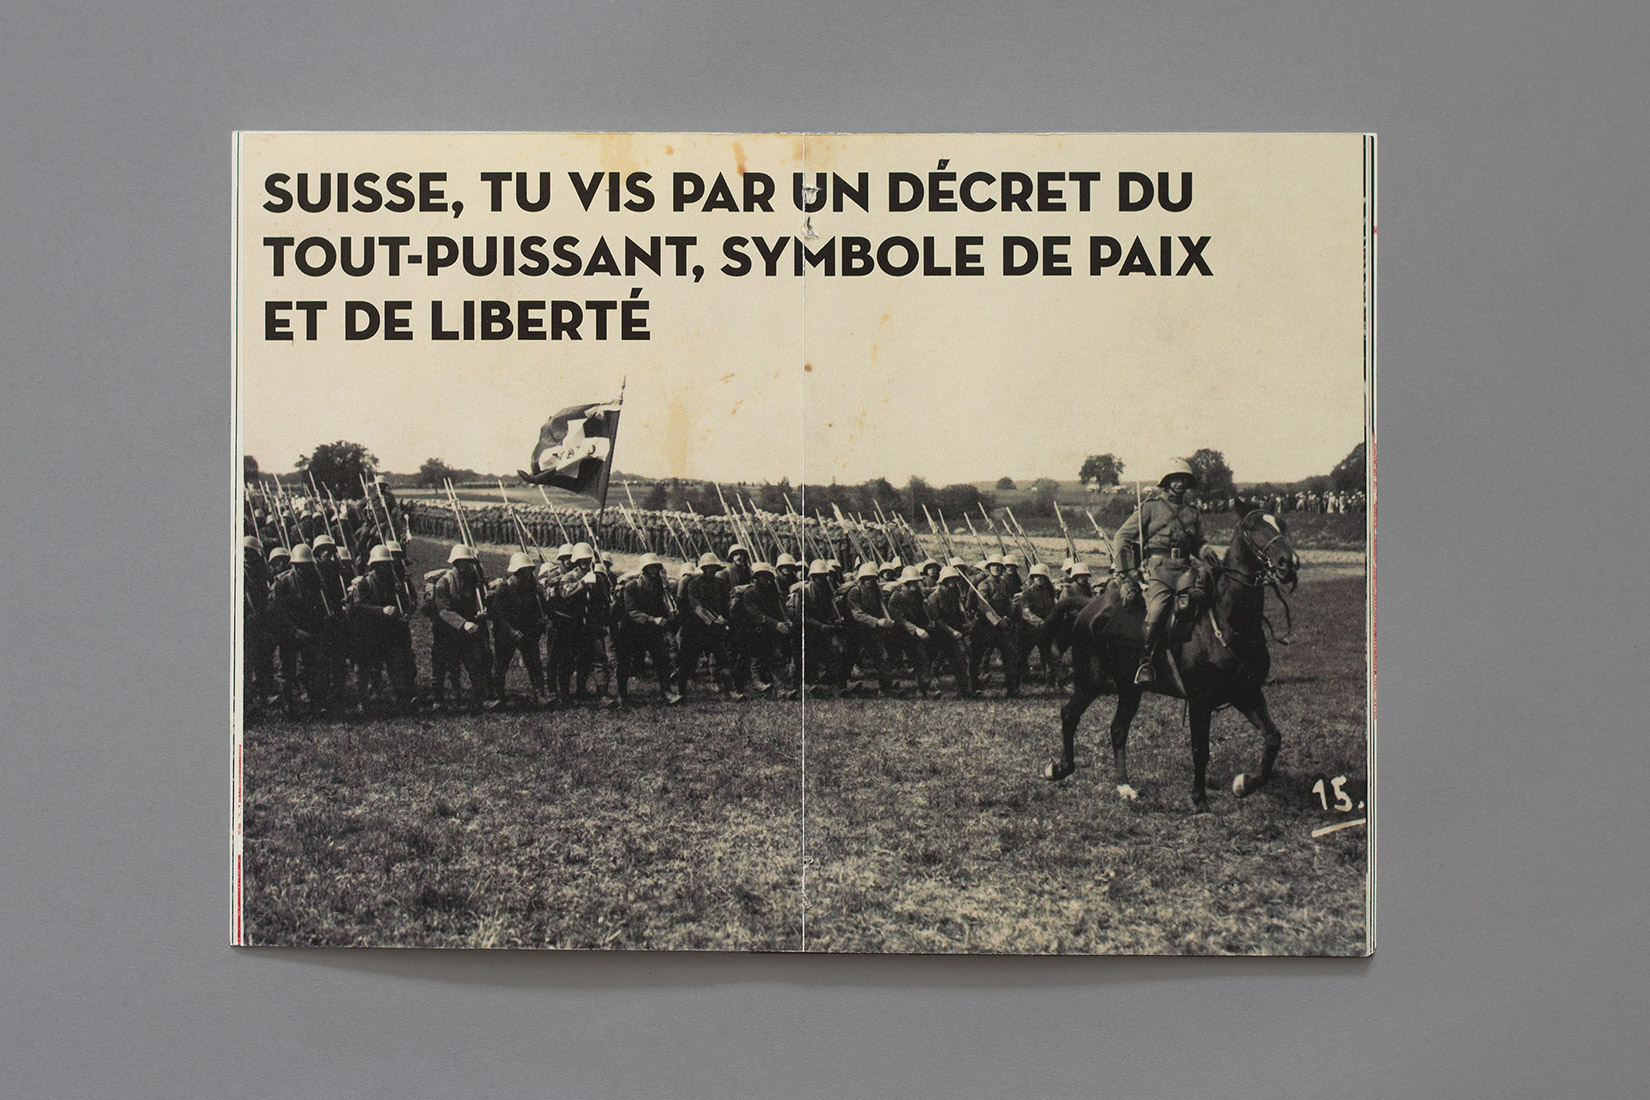 Manual for the perfect little soldier, army, horse, swiss flag, battlefield, Switzerland, tu vis par un décret du tout-puissant, symbole de paix et de liberté